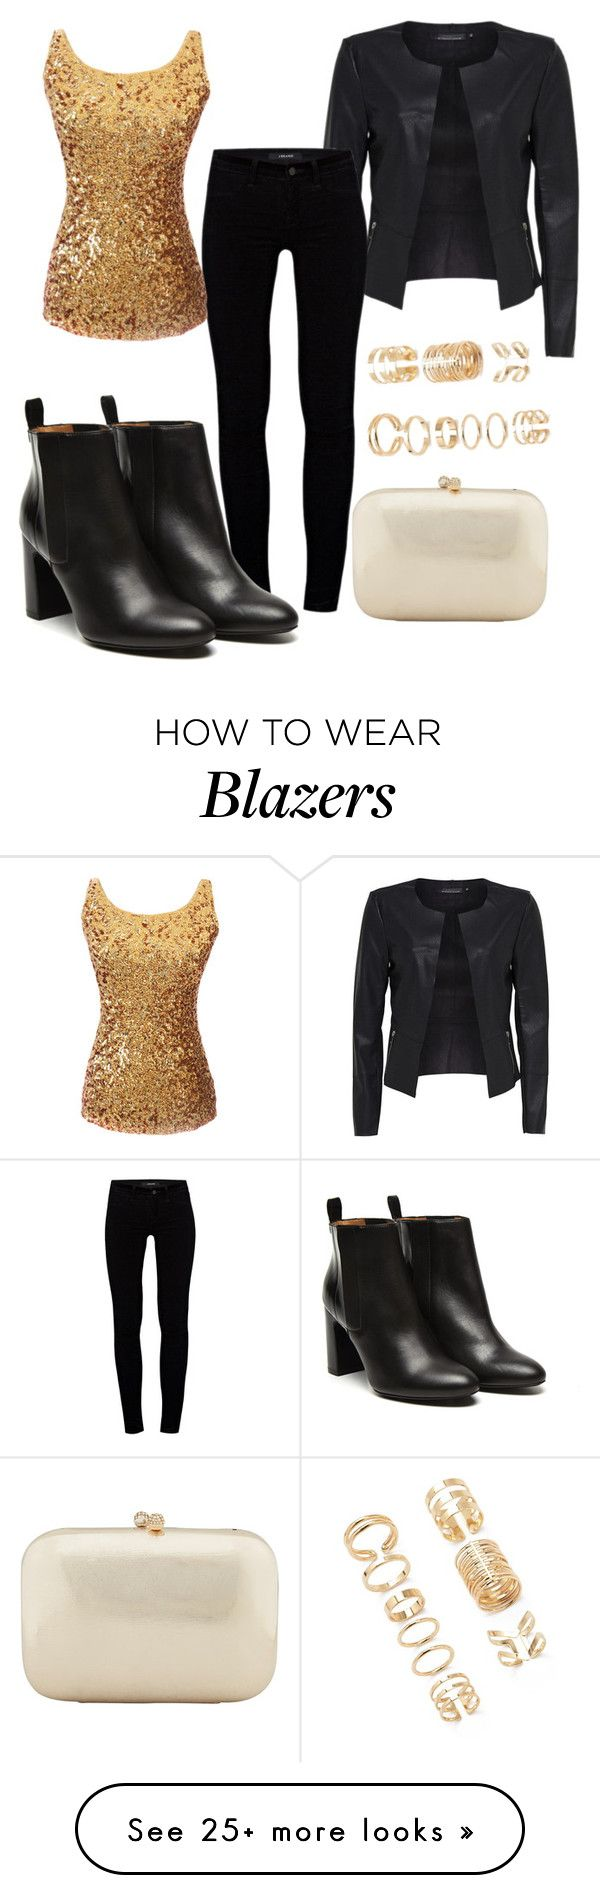 """""""Untitled #262"""" by letiperez01 on Polyvore featuring Forever 21, J Brand, Stephane Kélian and Serpui"""